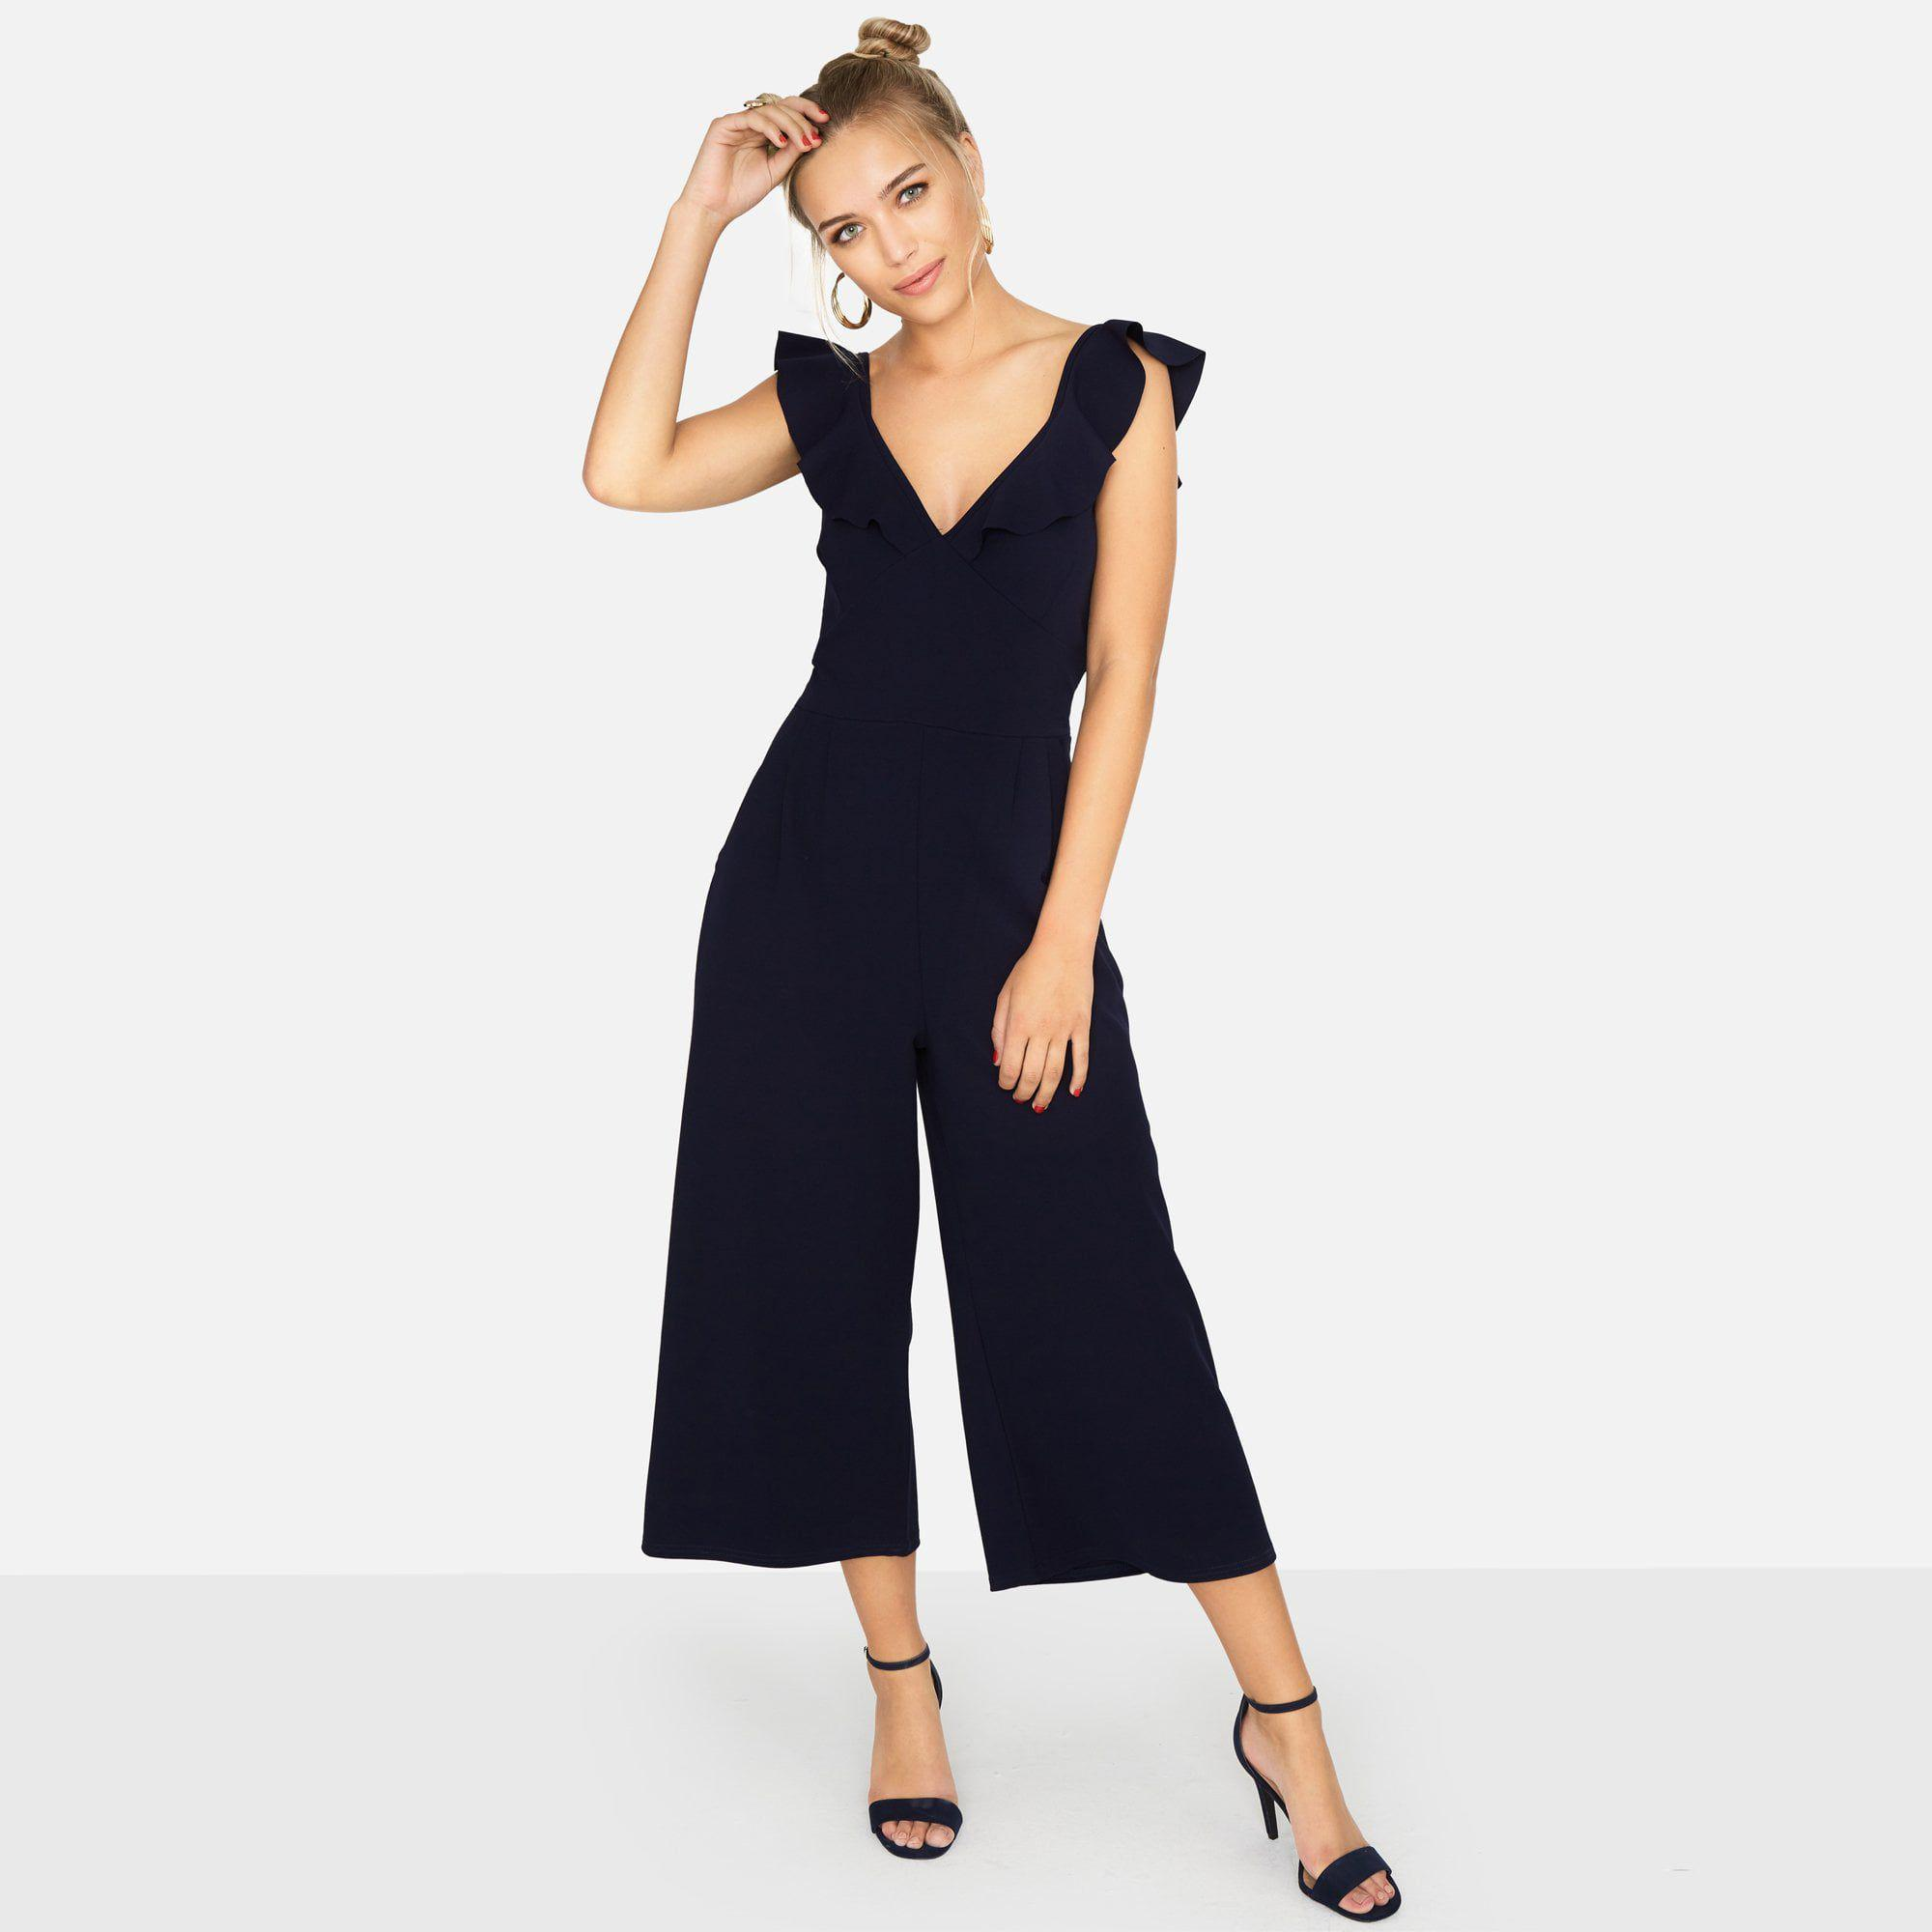 cfcbca2d79f3 Girls On Film Navy Veto Frill Culotte Jumpsuit in Blue - Lyst